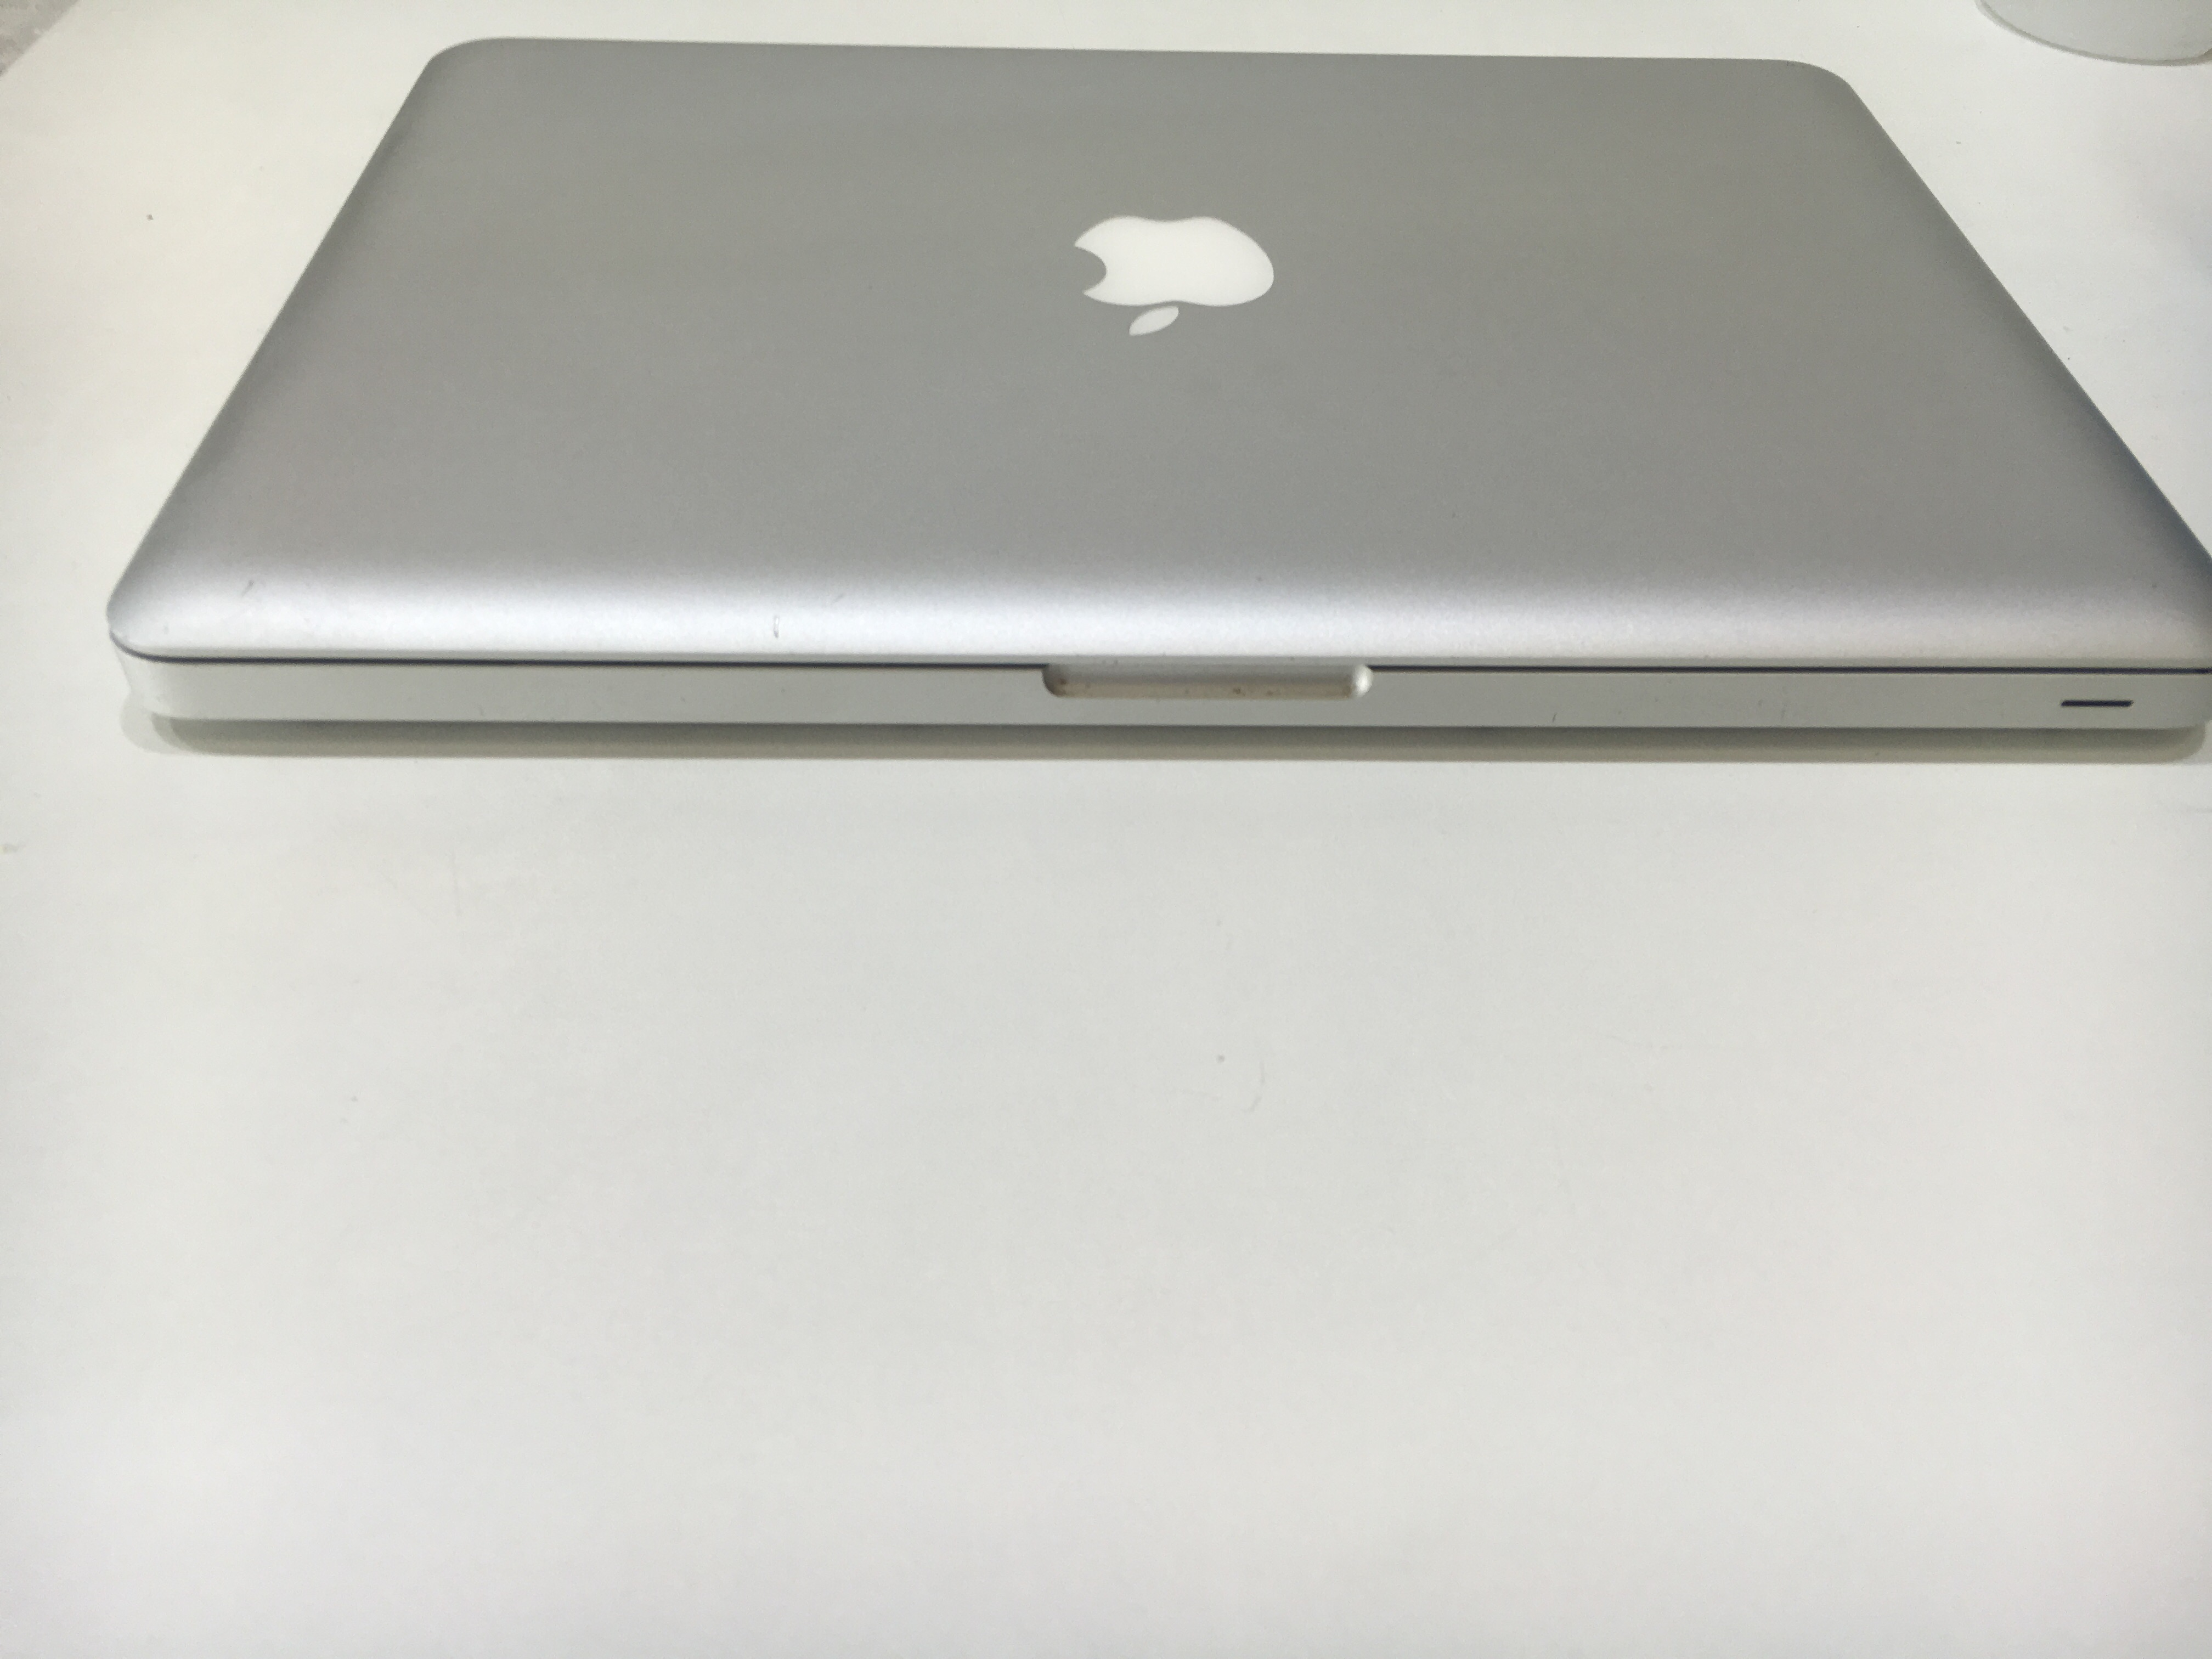 Apple MacBook Pro 13inch Intel Core i7 2.7GHz 8GB RAM 500GB HDD MC724BA A1278